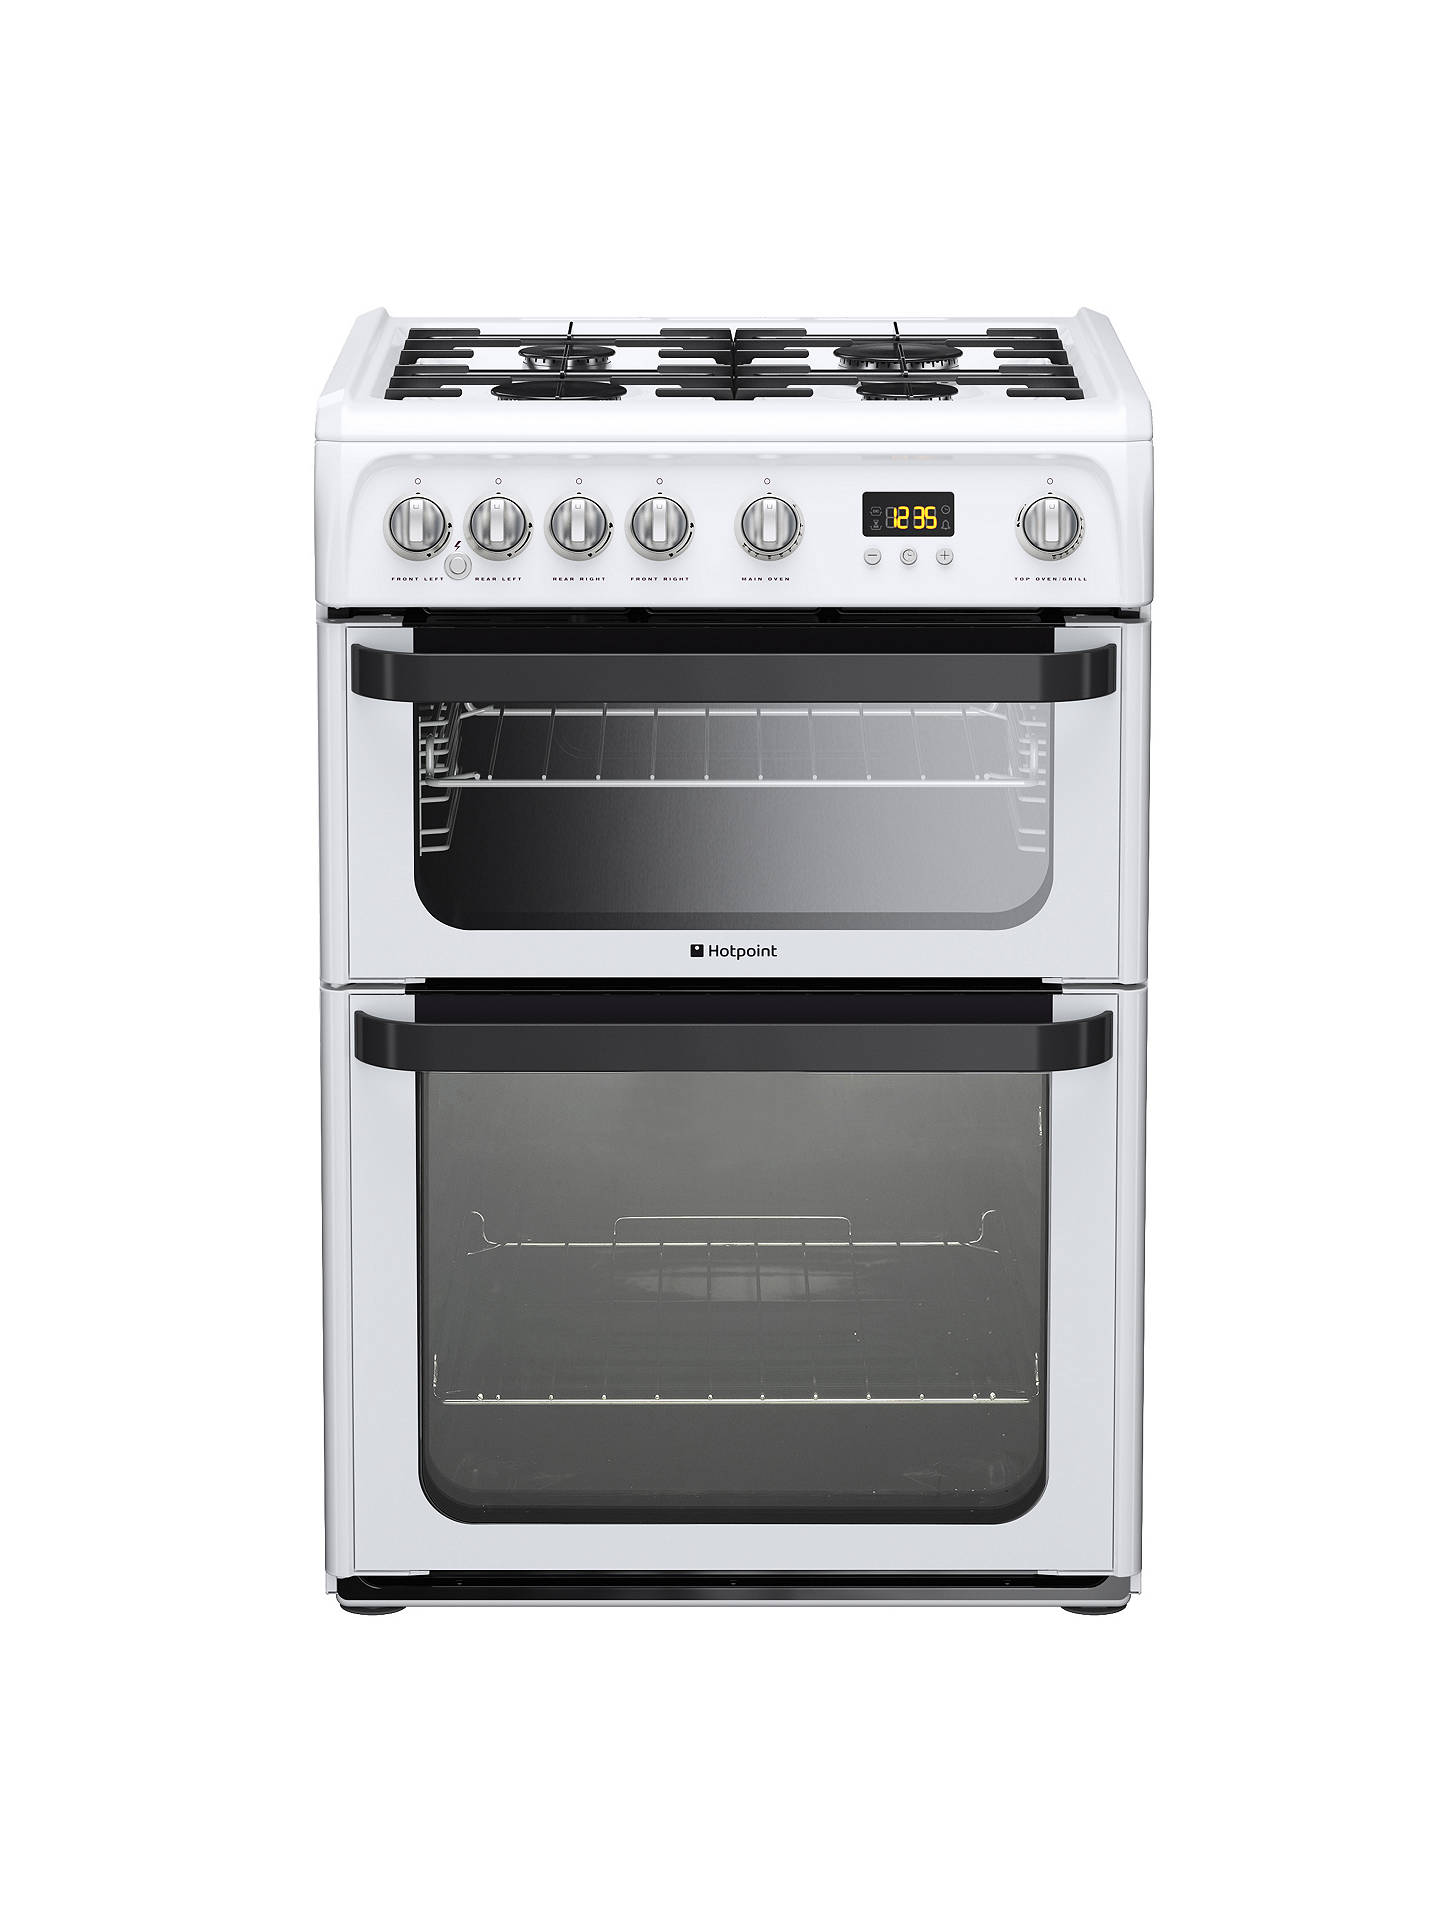 hotpoint signature jlg60p gas cooker white at john lewis. Black Bedroom Furniture Sets. Home Design Ideas